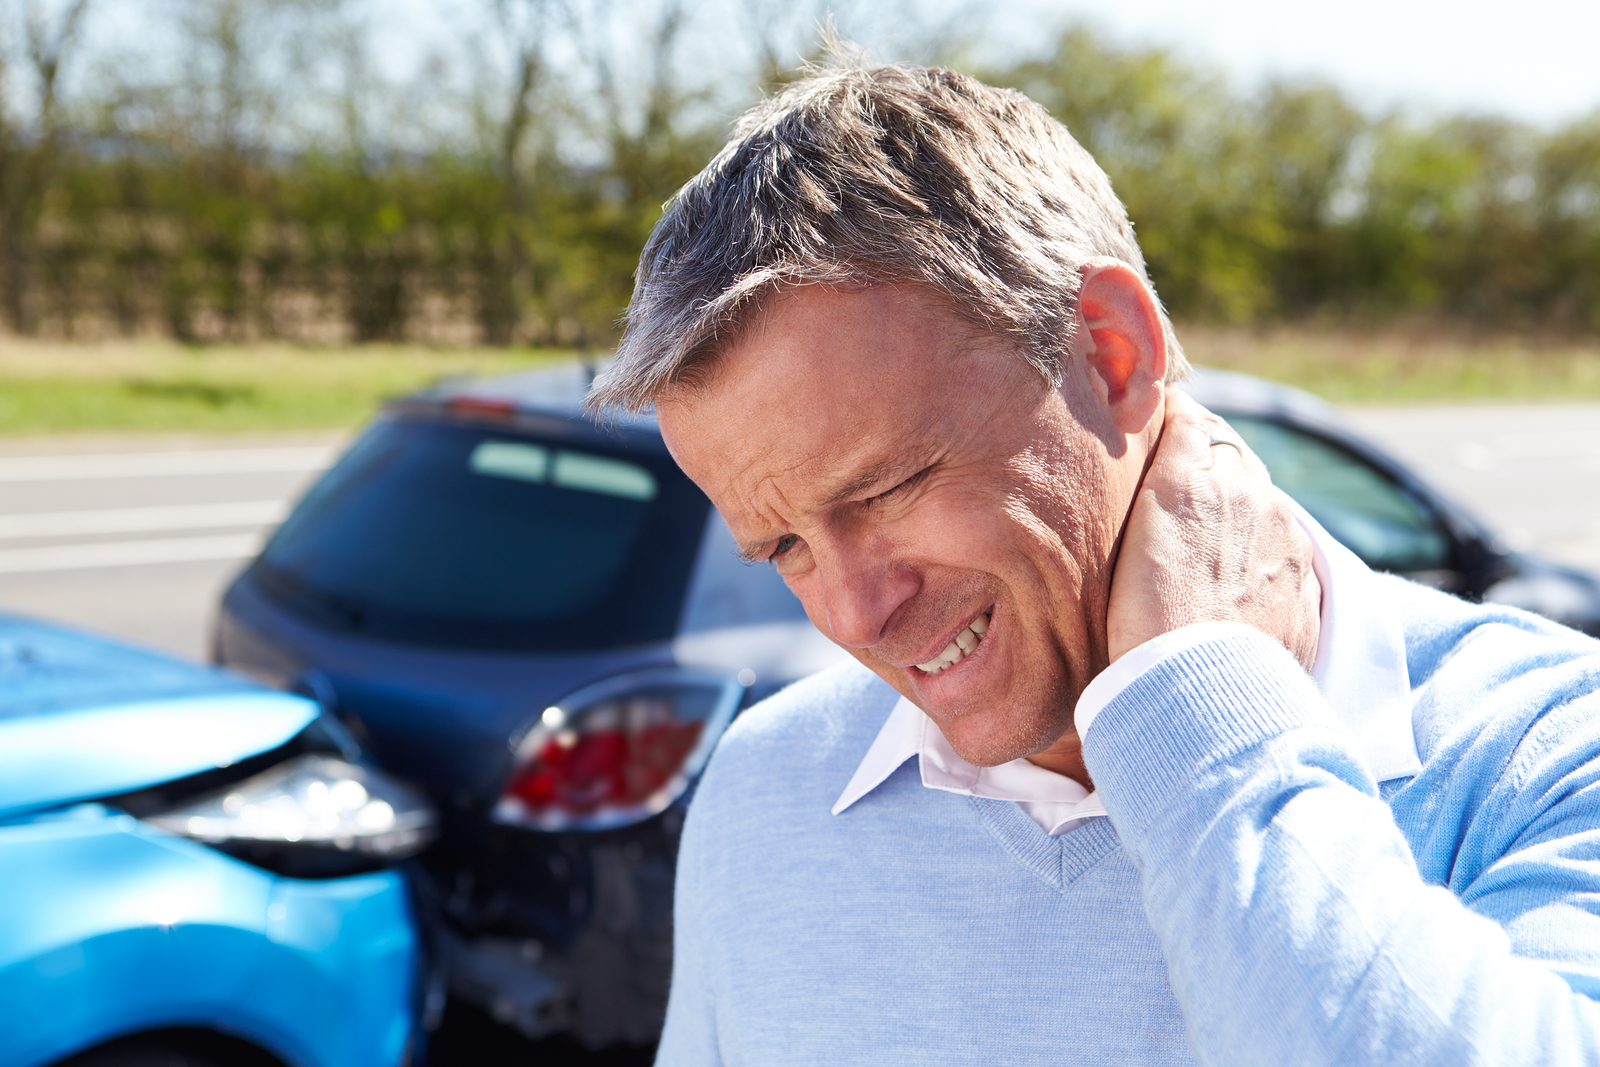 auto accident injury and whiplash treatment from your chiropractor in houma and thibodaux